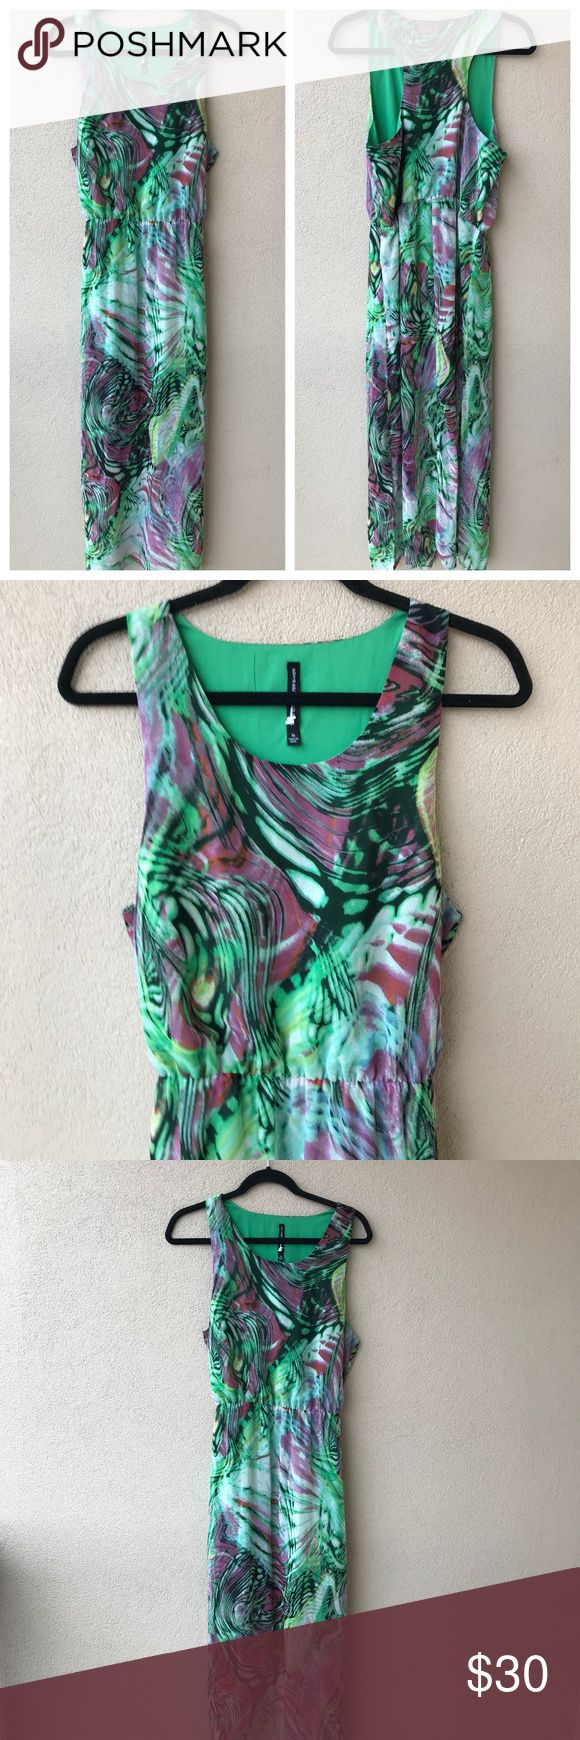 """W118 by Walter Baker Racerback Maxi Dress Watercolor swirl print racerback maxi dress from W118 by Walter Baker.  This green and purple dress has a scoop neck, side slit, blouson bodice and flowy skirt.  Lined up to the thighs.  Excellent used condition.  - Size Medium M - Approx. 18.5"""" armpit to armpit - Approx. 14"""" across waist (elastic waistband) - Approx. 57"""" long - 100% polyester W118 by Walter Baker Dresses Maxi"""